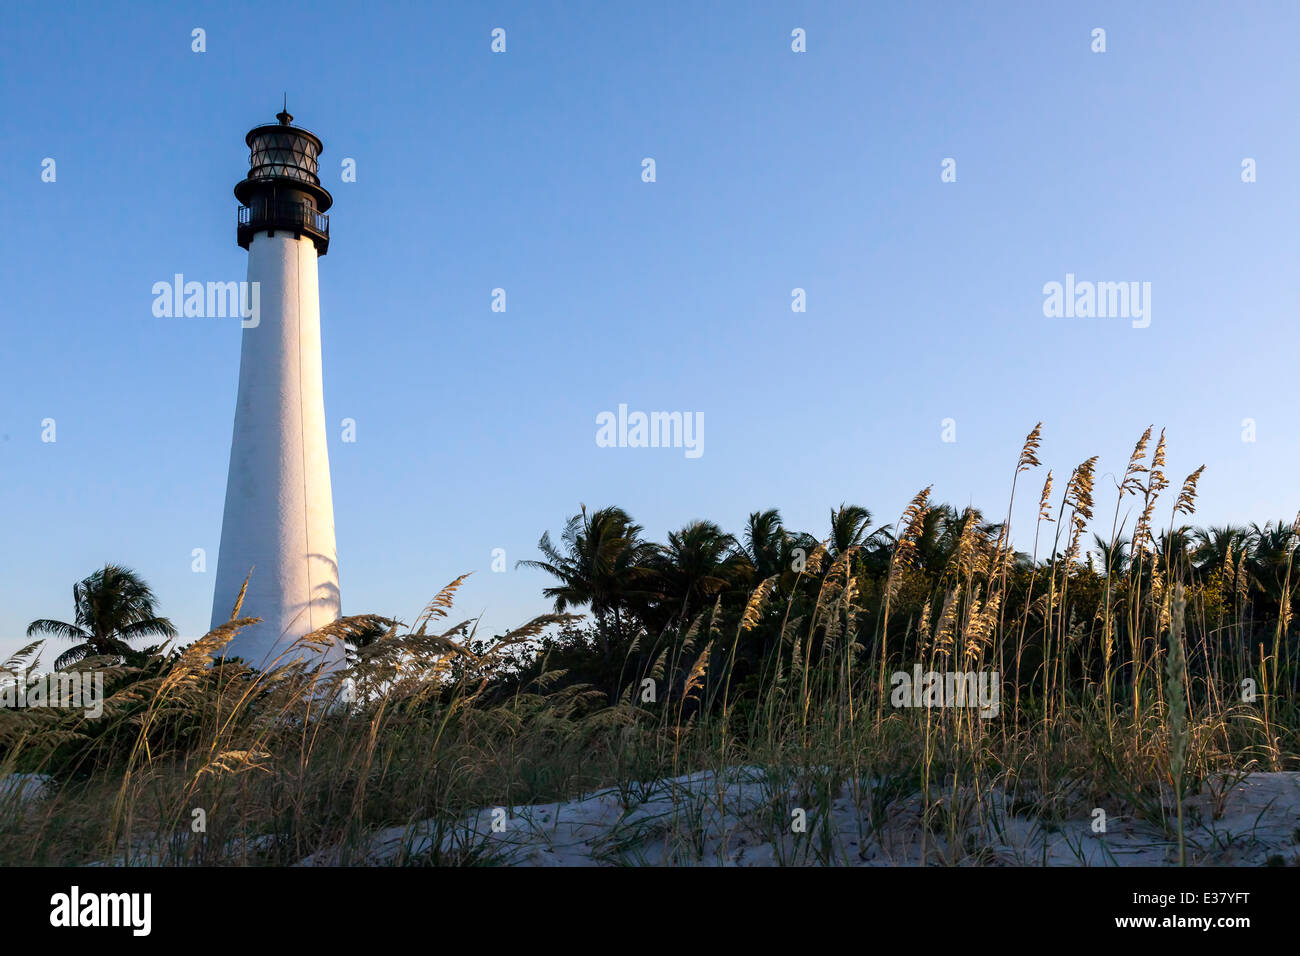 Historic Cape Florida Lighthouse located in the Bill Baggs Cape Florida State Park on Key Biscayne, Miami, Florida, Stock Photo